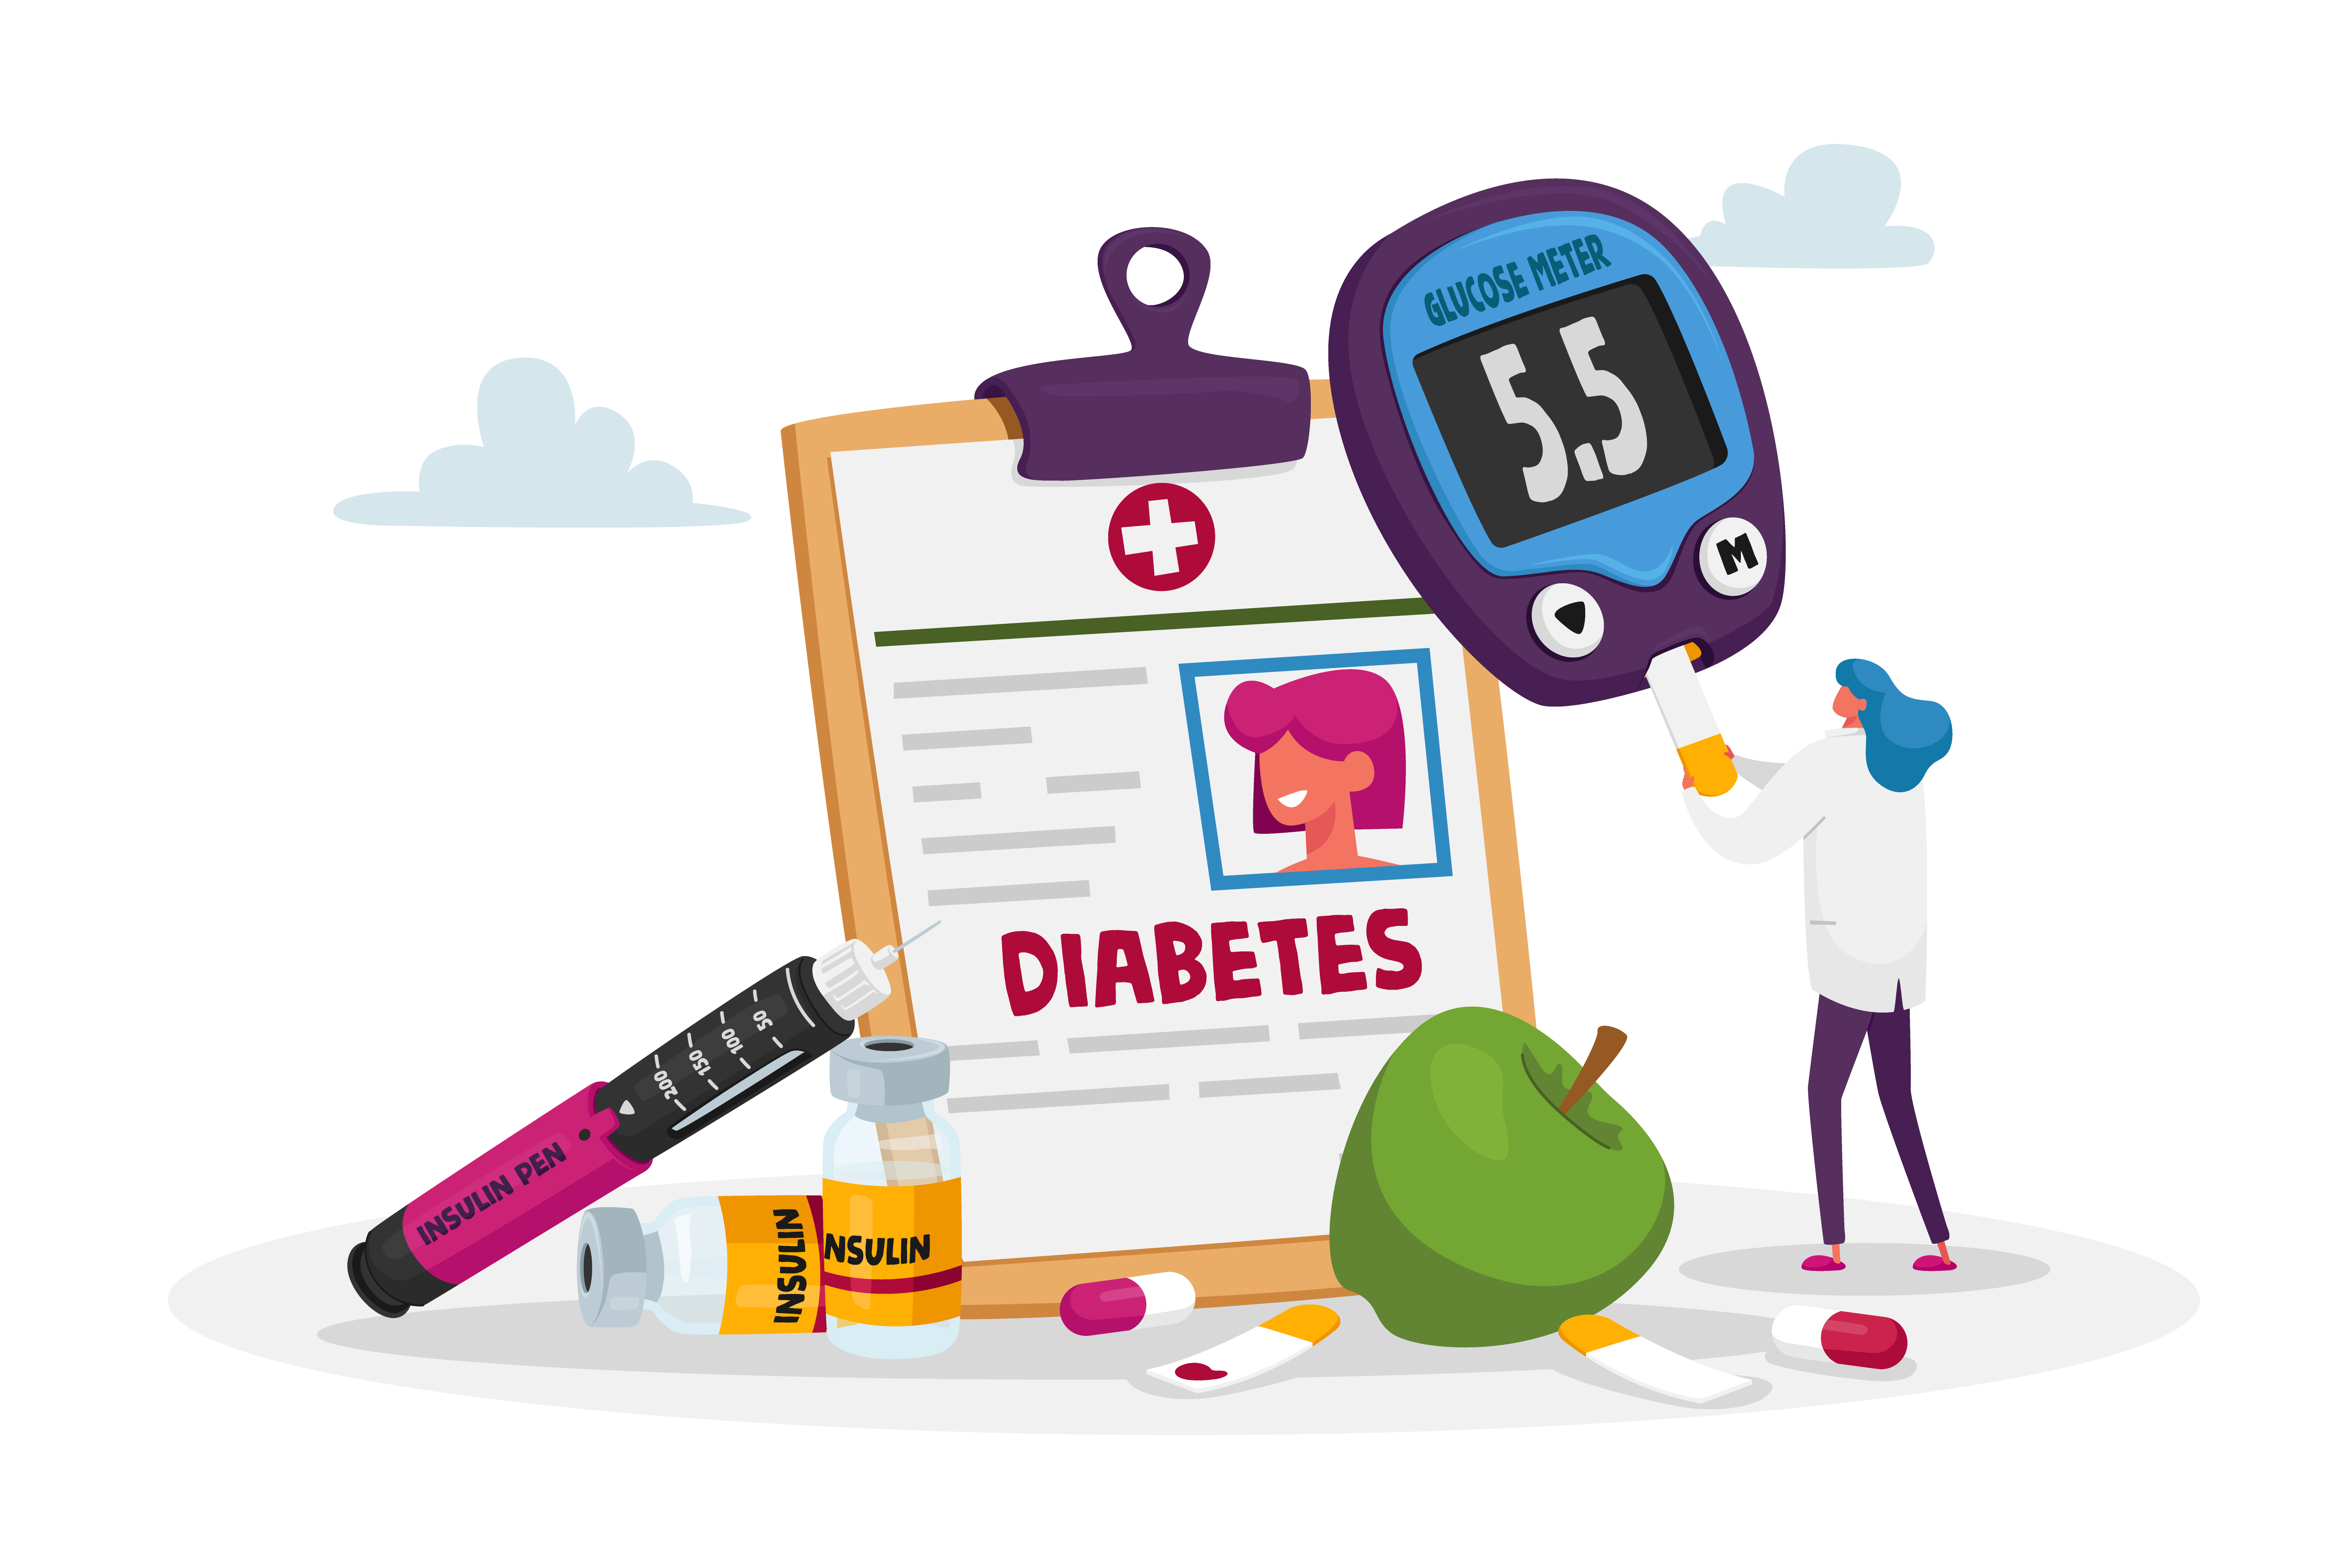 Tiny Doctor Female Character Insert Sample with Blood into Digital Glucose Meter to Control Diabetes Sickness. Huge Medicine Bottle, Insulin Pen and Apply for Healthy Life. Cartoon Vector Illustration